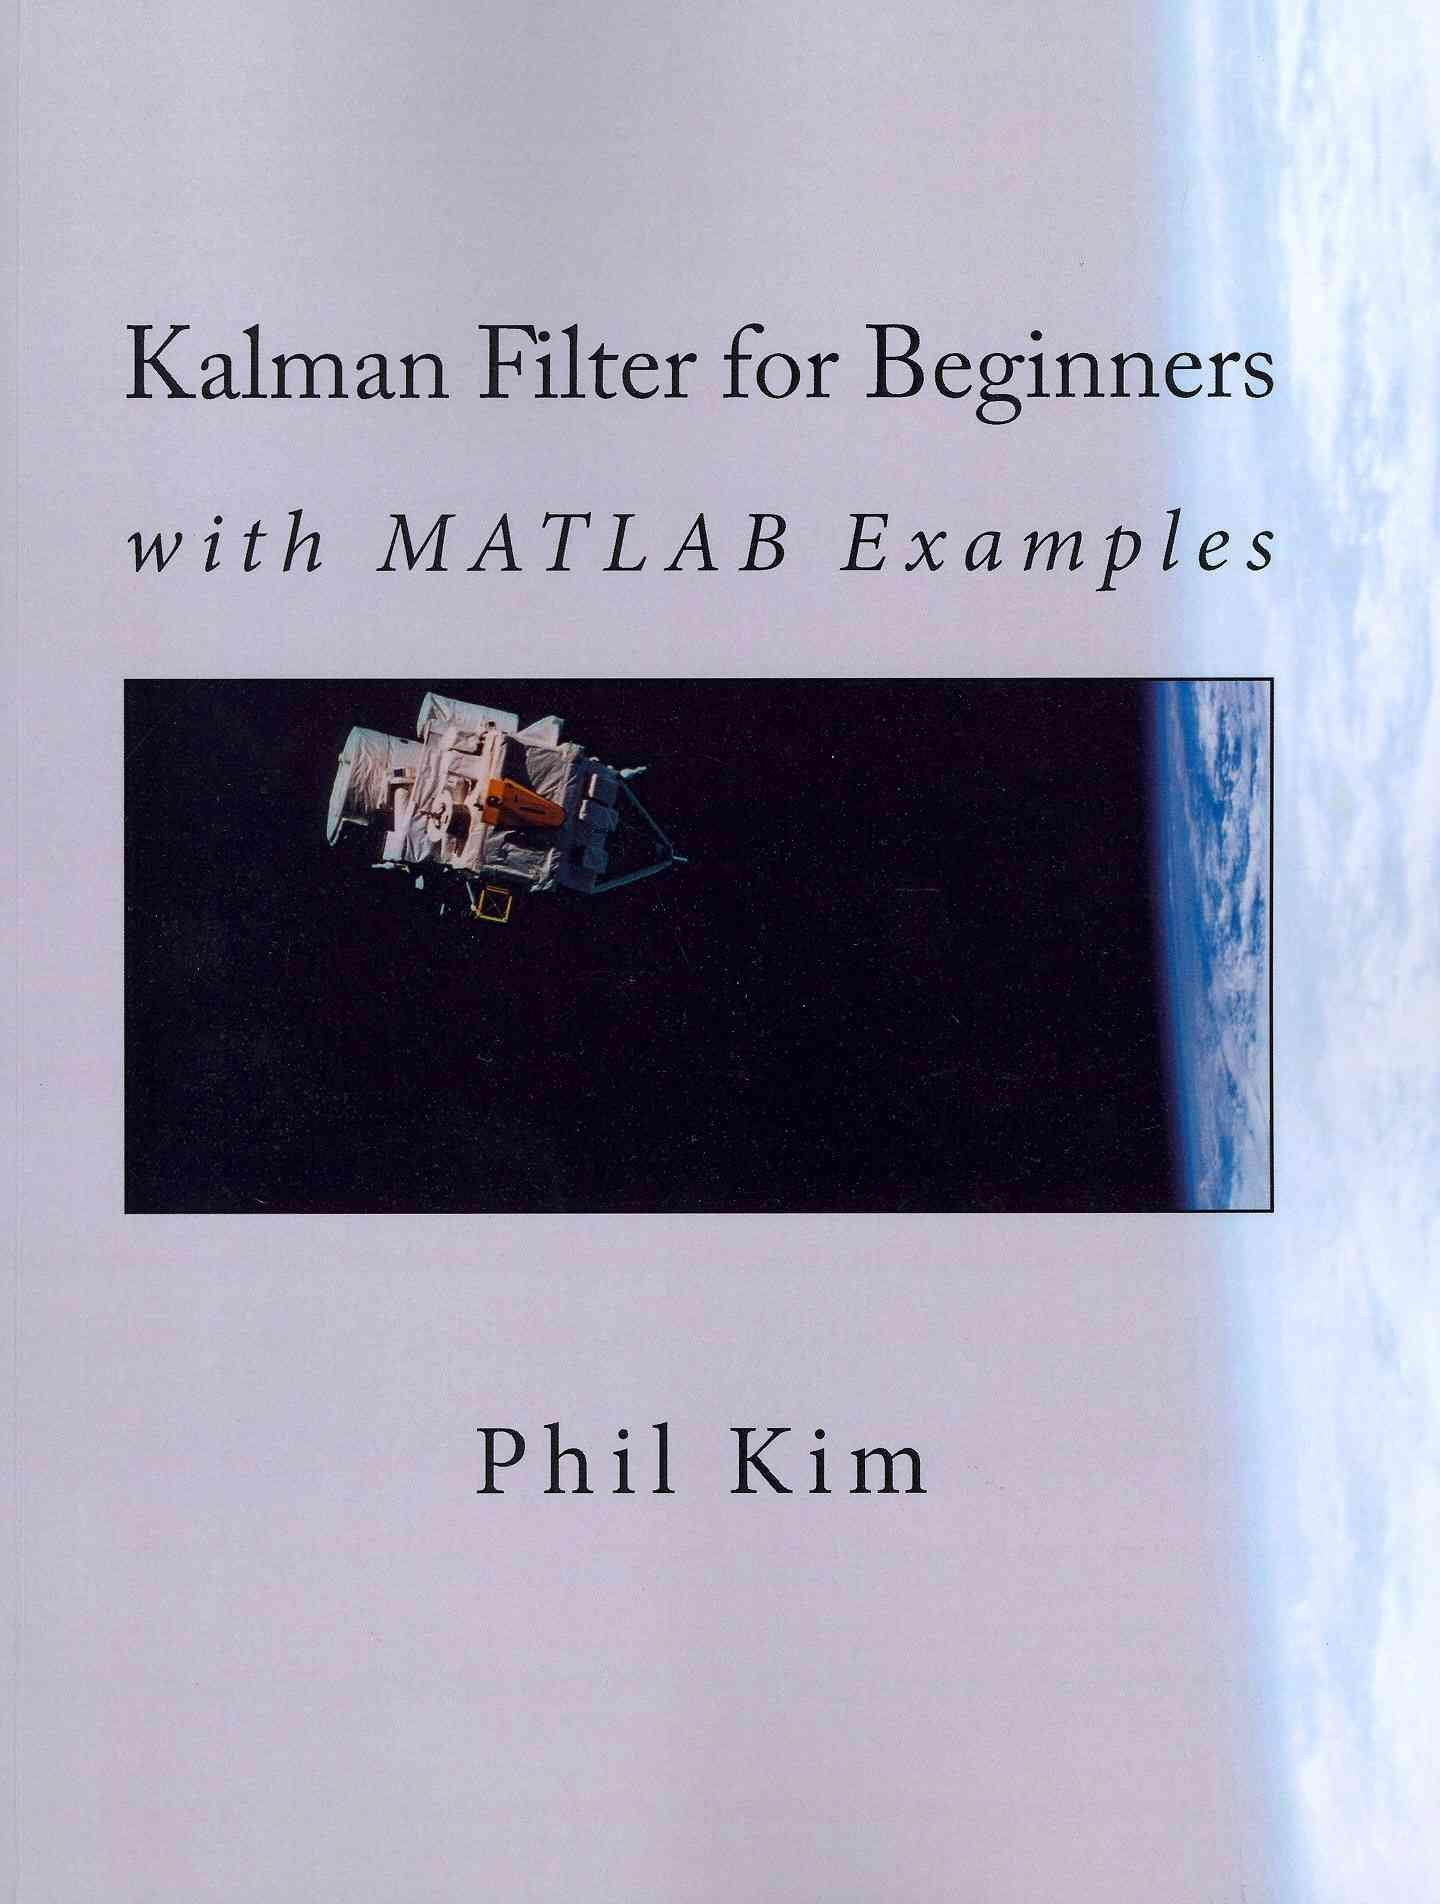 Kalman Filter for Beginners: With Matlab Examples   Download